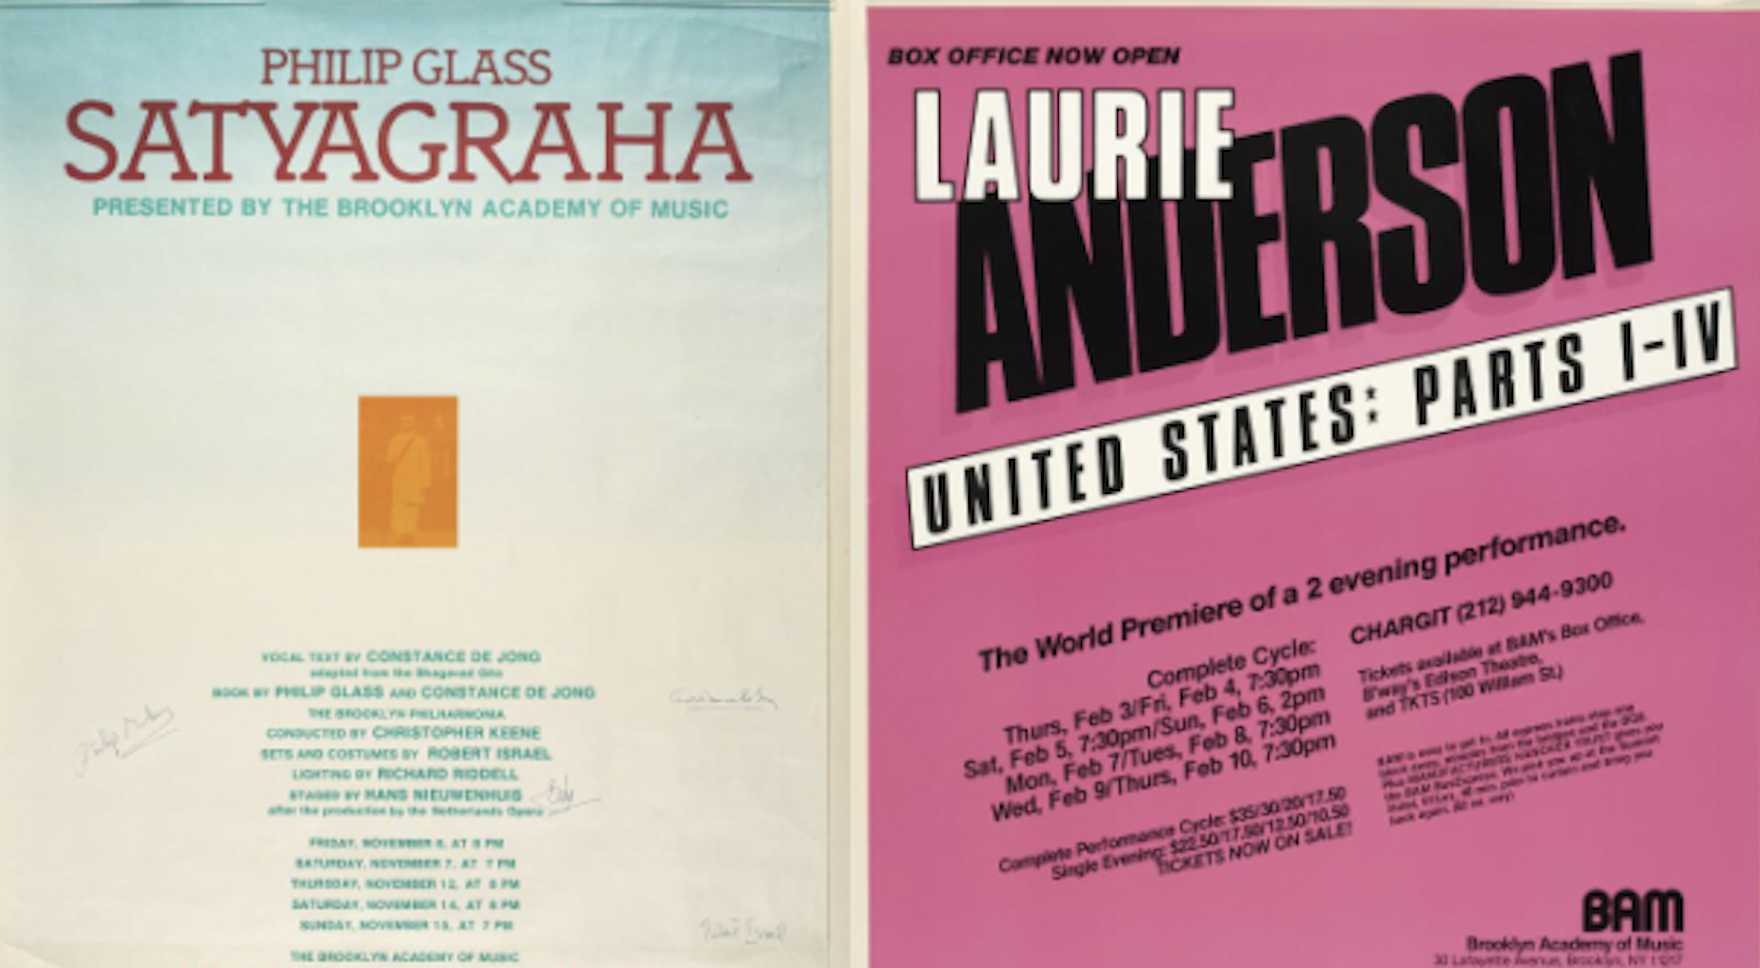 Brooklyn academy of music puts online 70 000 objects documenting the history of the performing arts download playbills posters more open culture